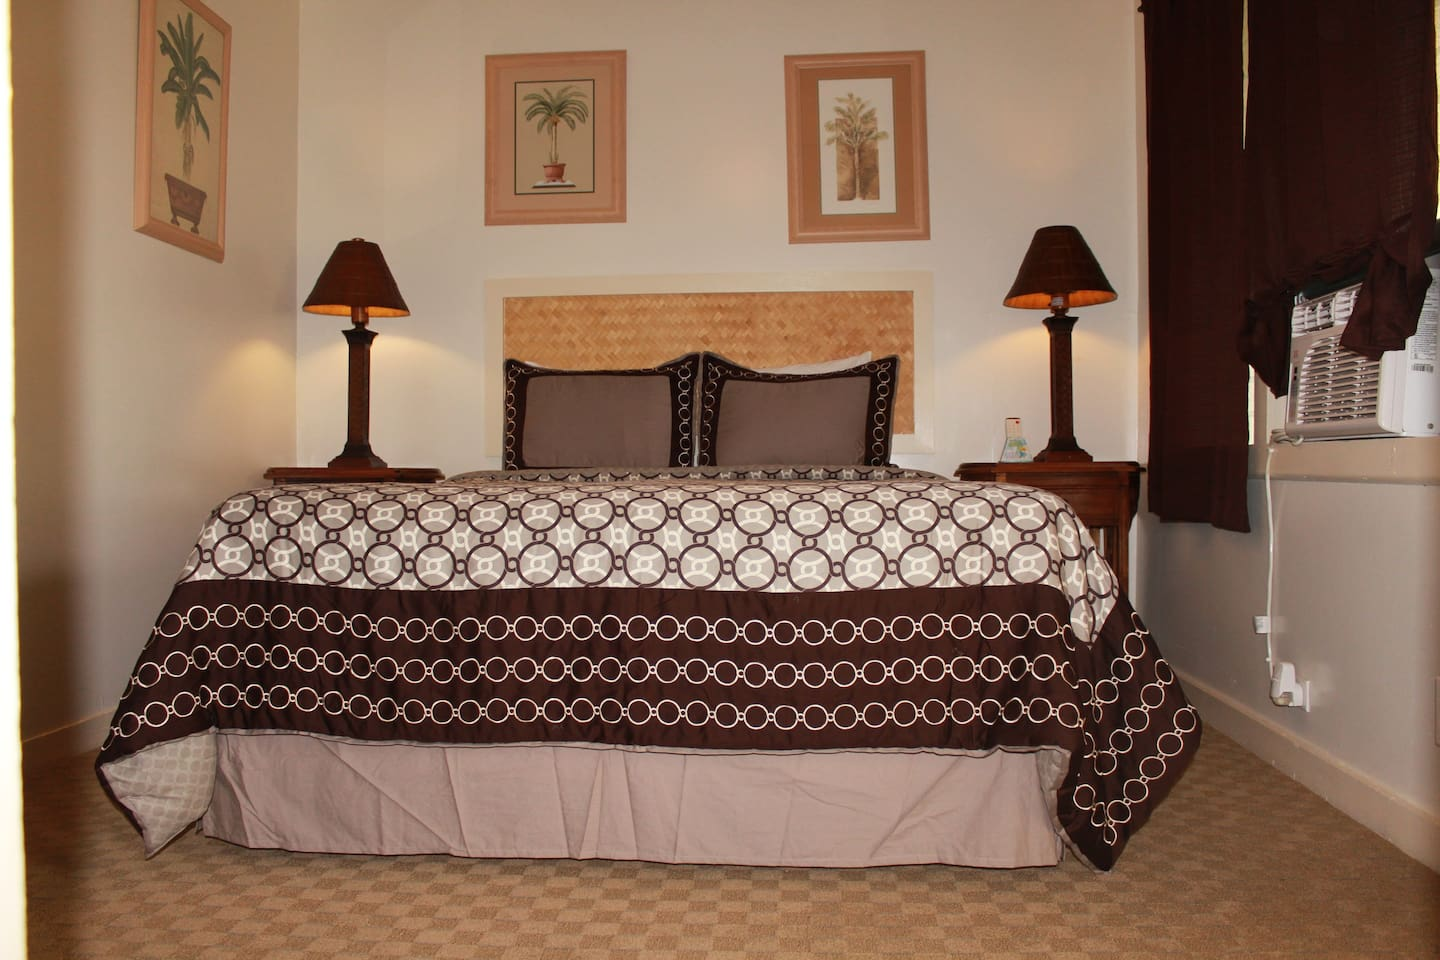 Deluxe room with A.C.  Comes with either one Queen bed or two Twin beds.  Flat screen TV, mini fridge and private bath.